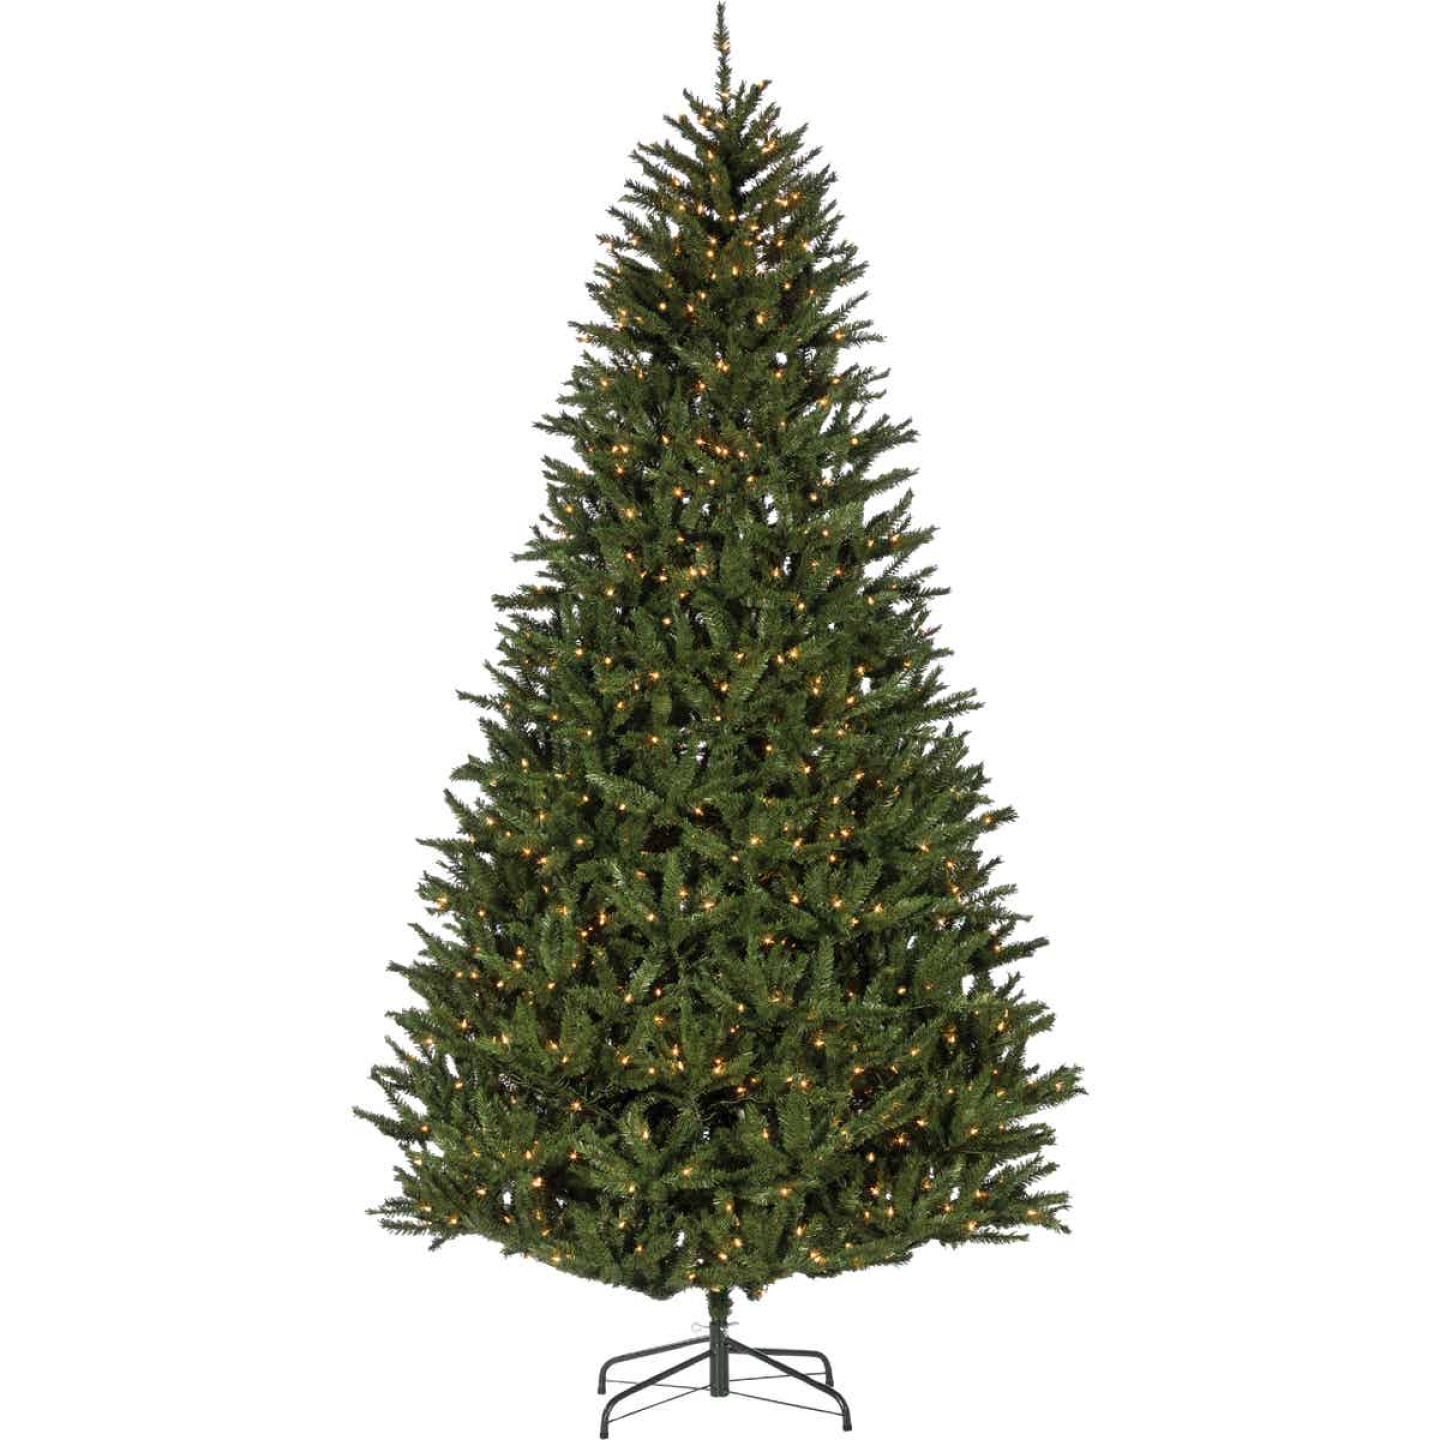 Sterling 9 Ft. New England Pine 1100-Bulb Clear Incandescent Prelit Artificial Christmas Tree Image 1